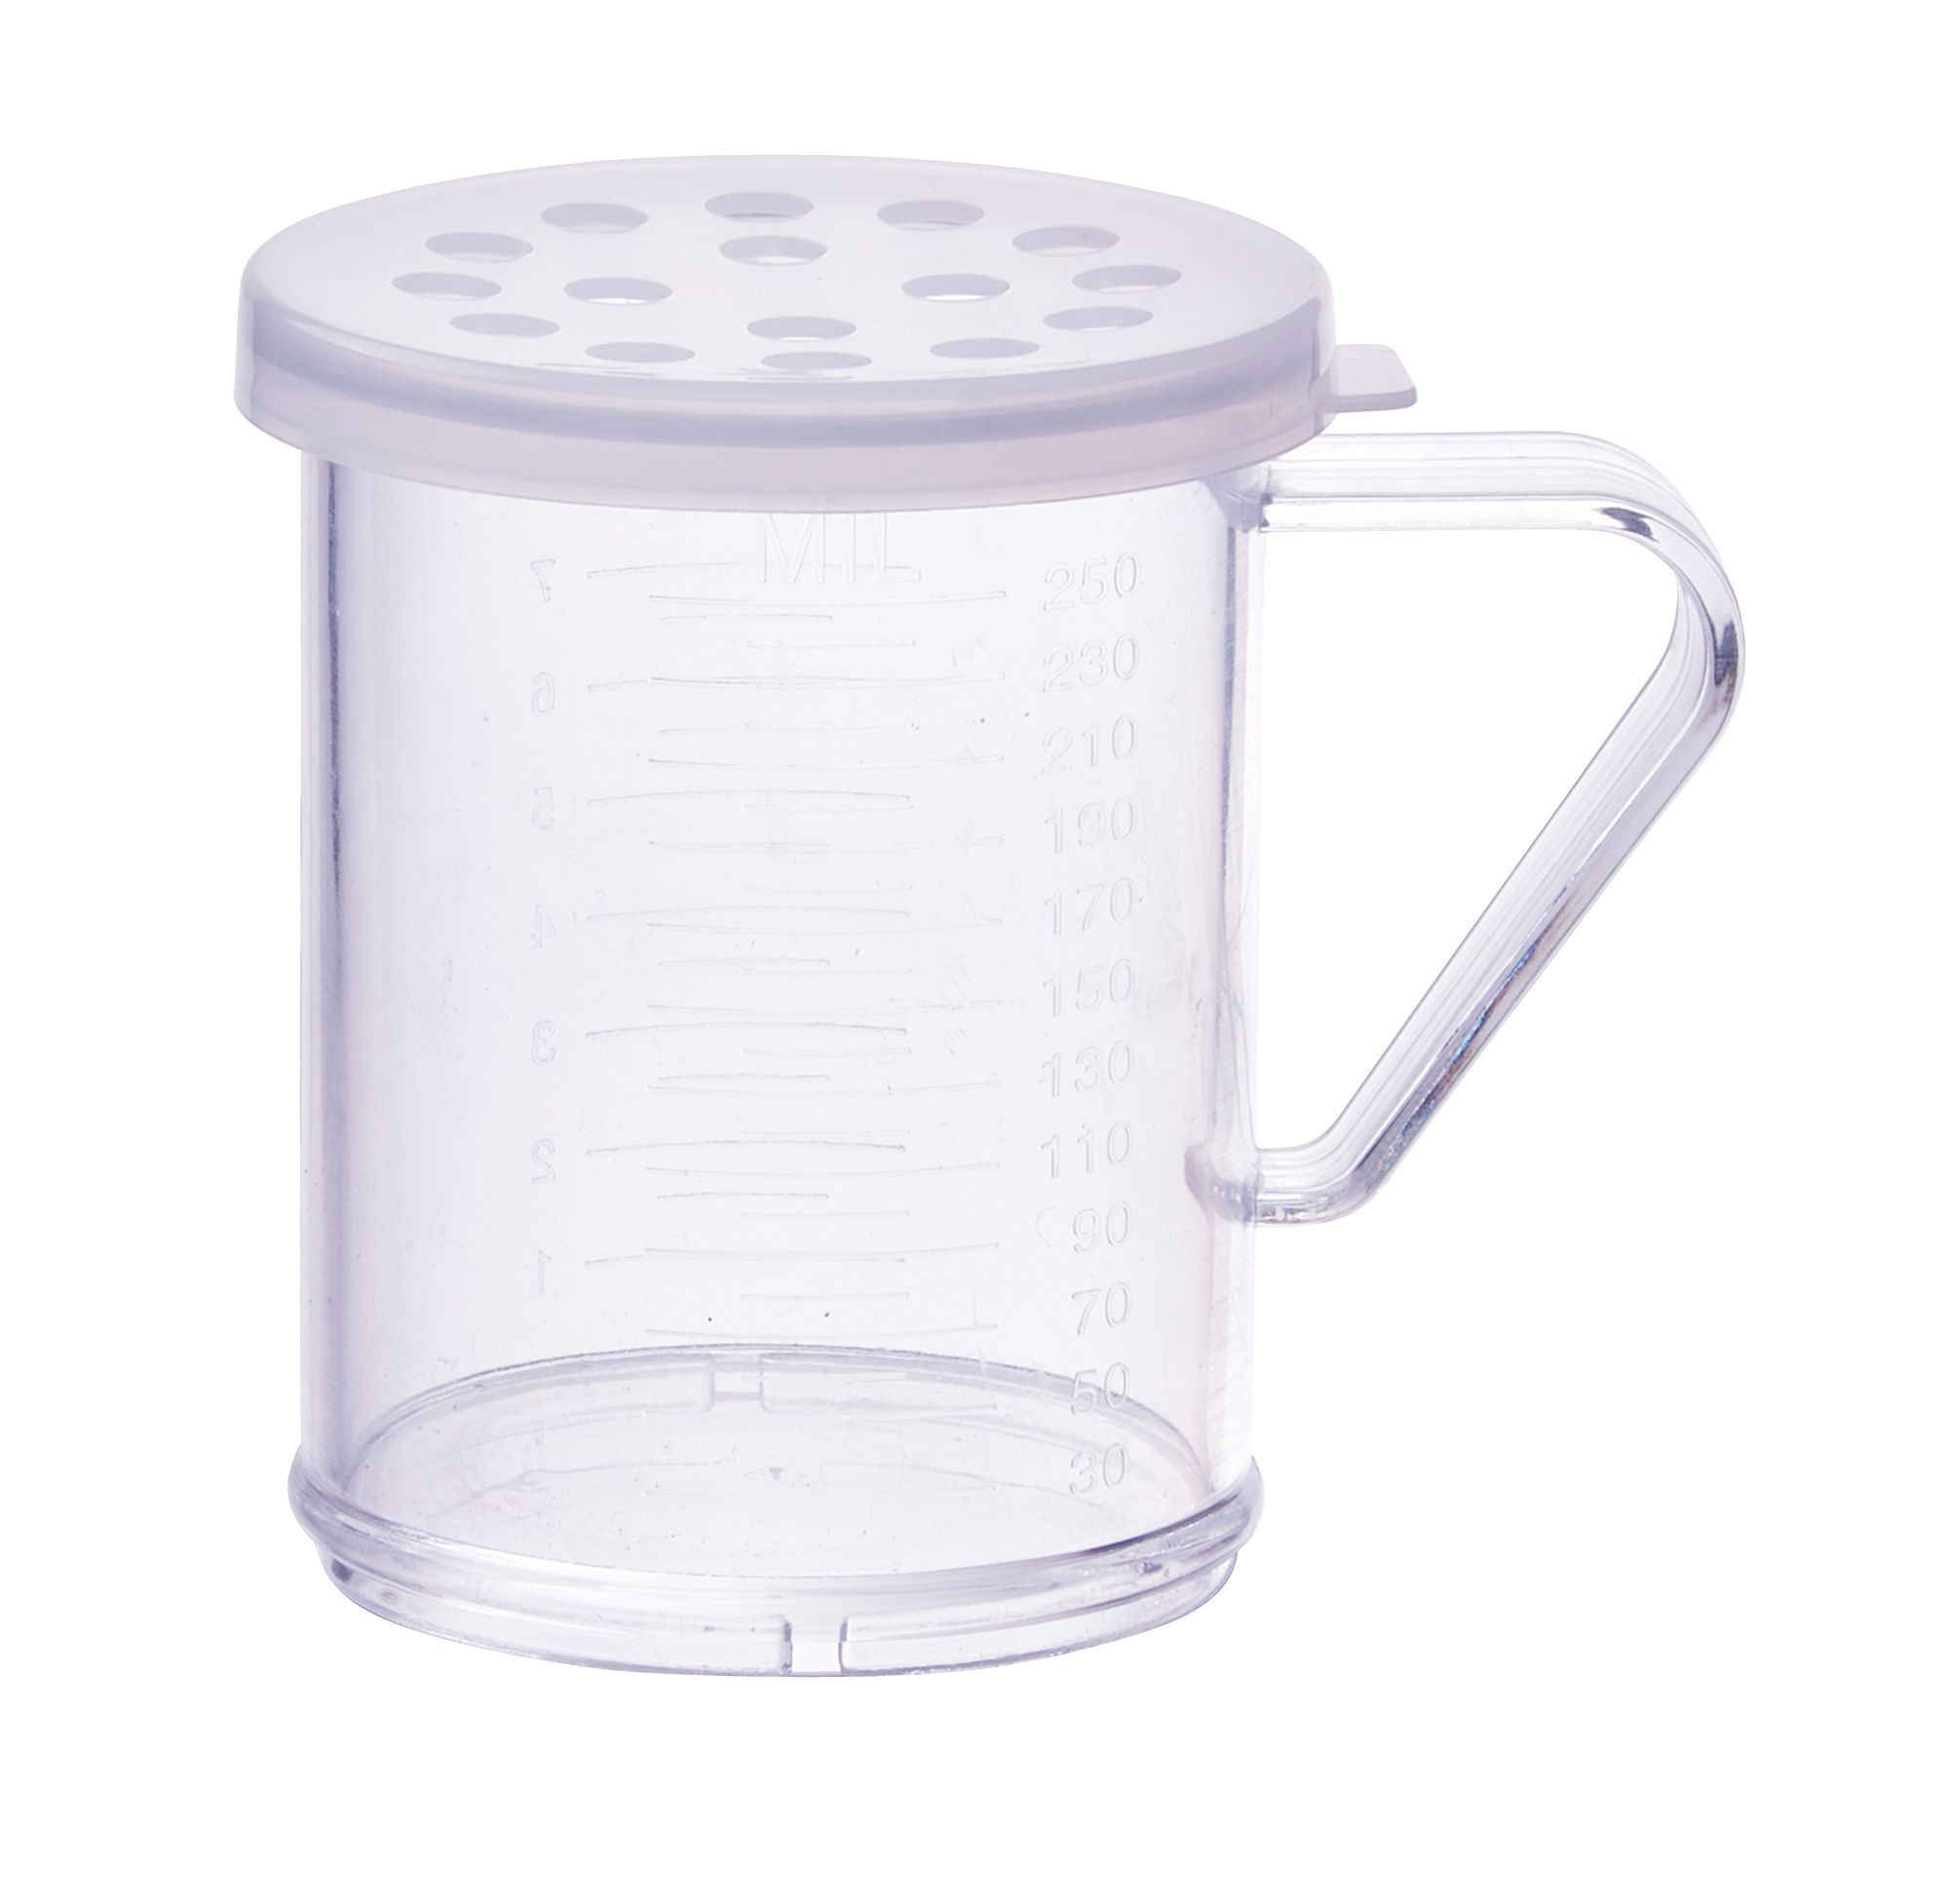 Winco PDG-10CXL 10 oz. Polycarbonate Dredge with Clear Snap-On Lid, Extra Large Holes